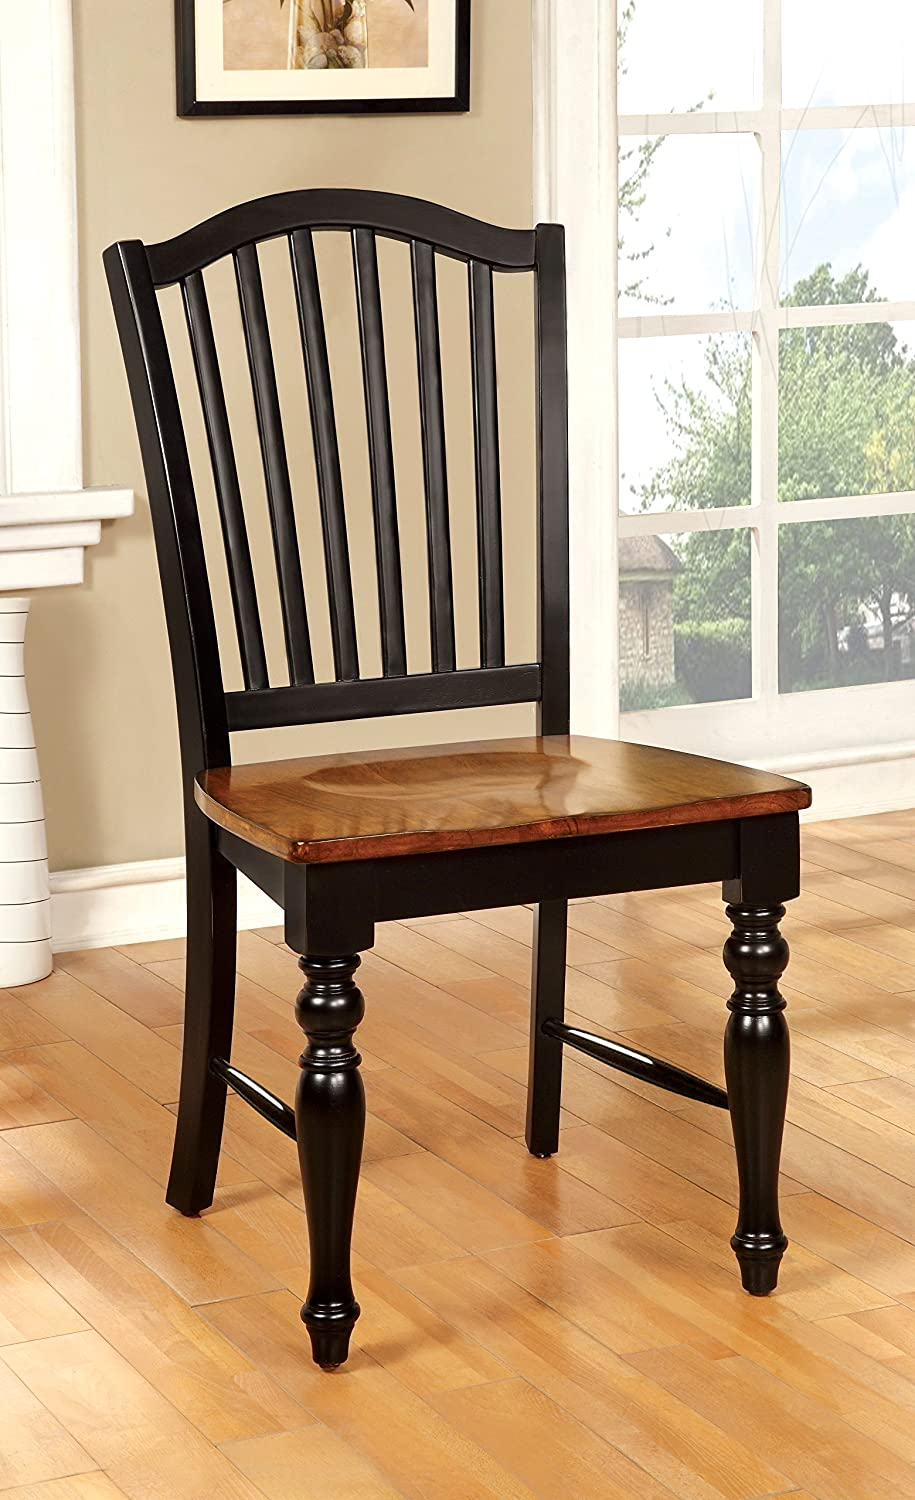 Furniture of America Antha Dining Chair, Black